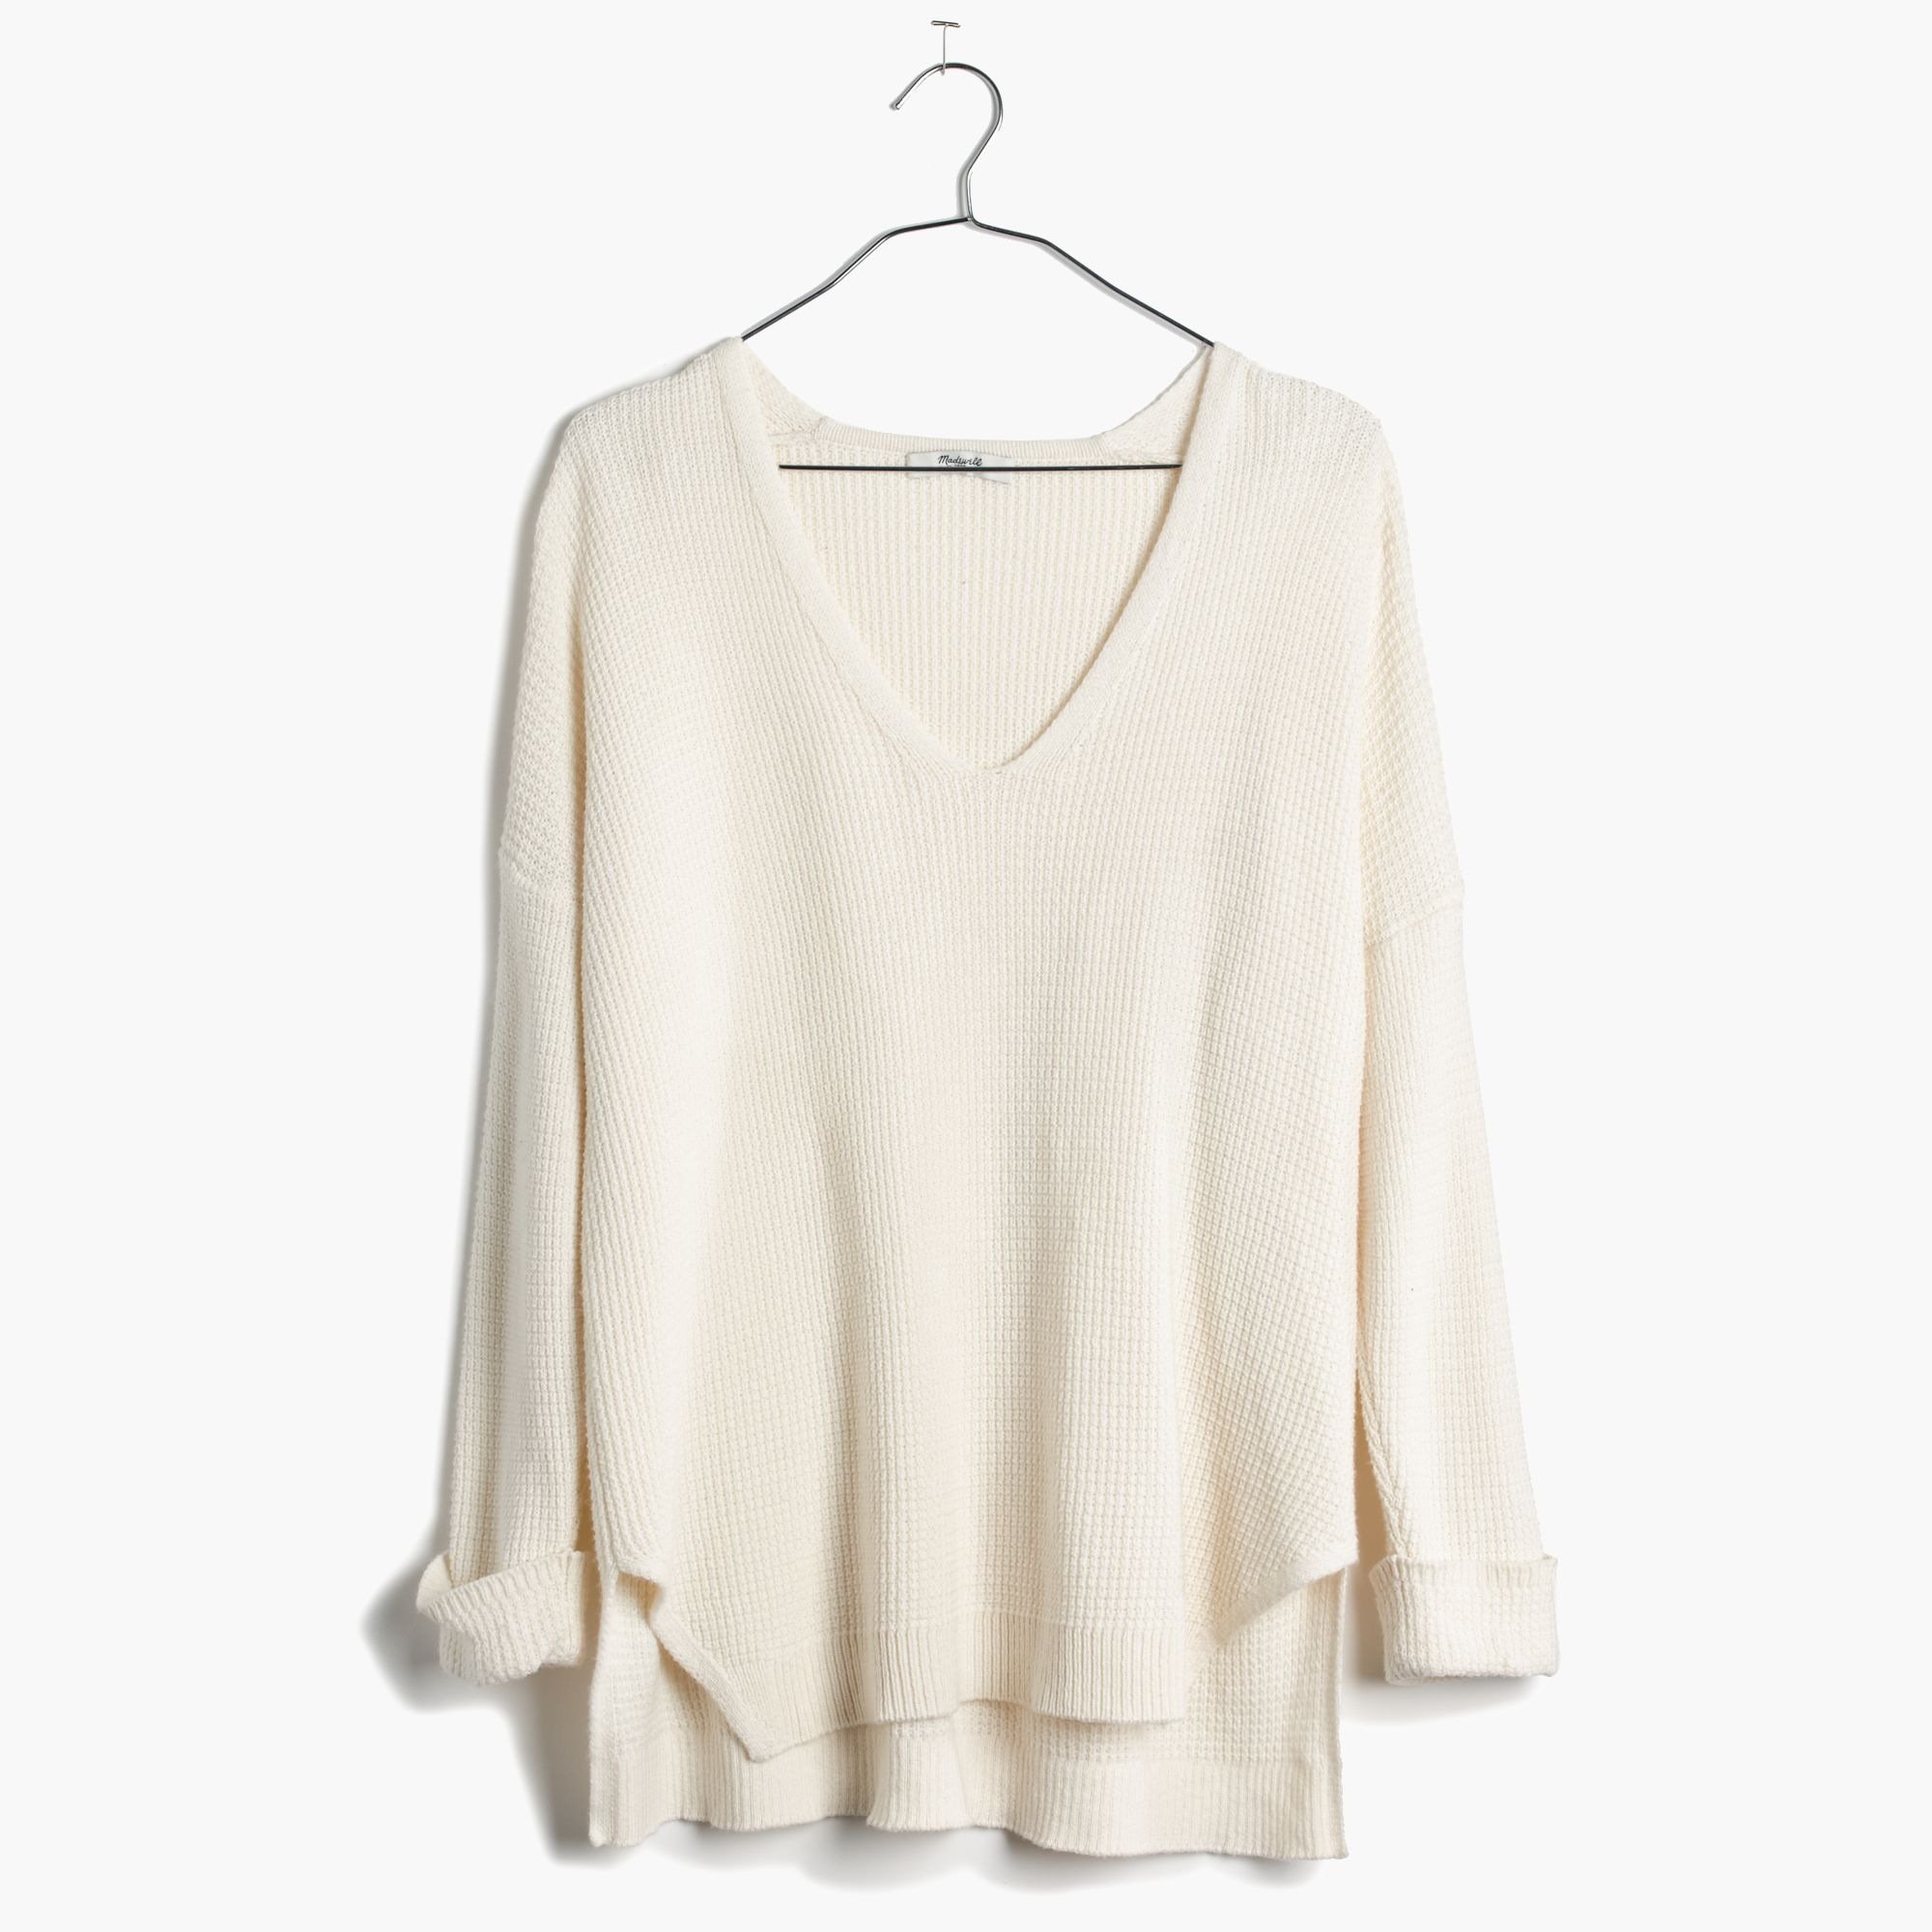 Madewell Oceanside Pullover Sweater in White   Lyst